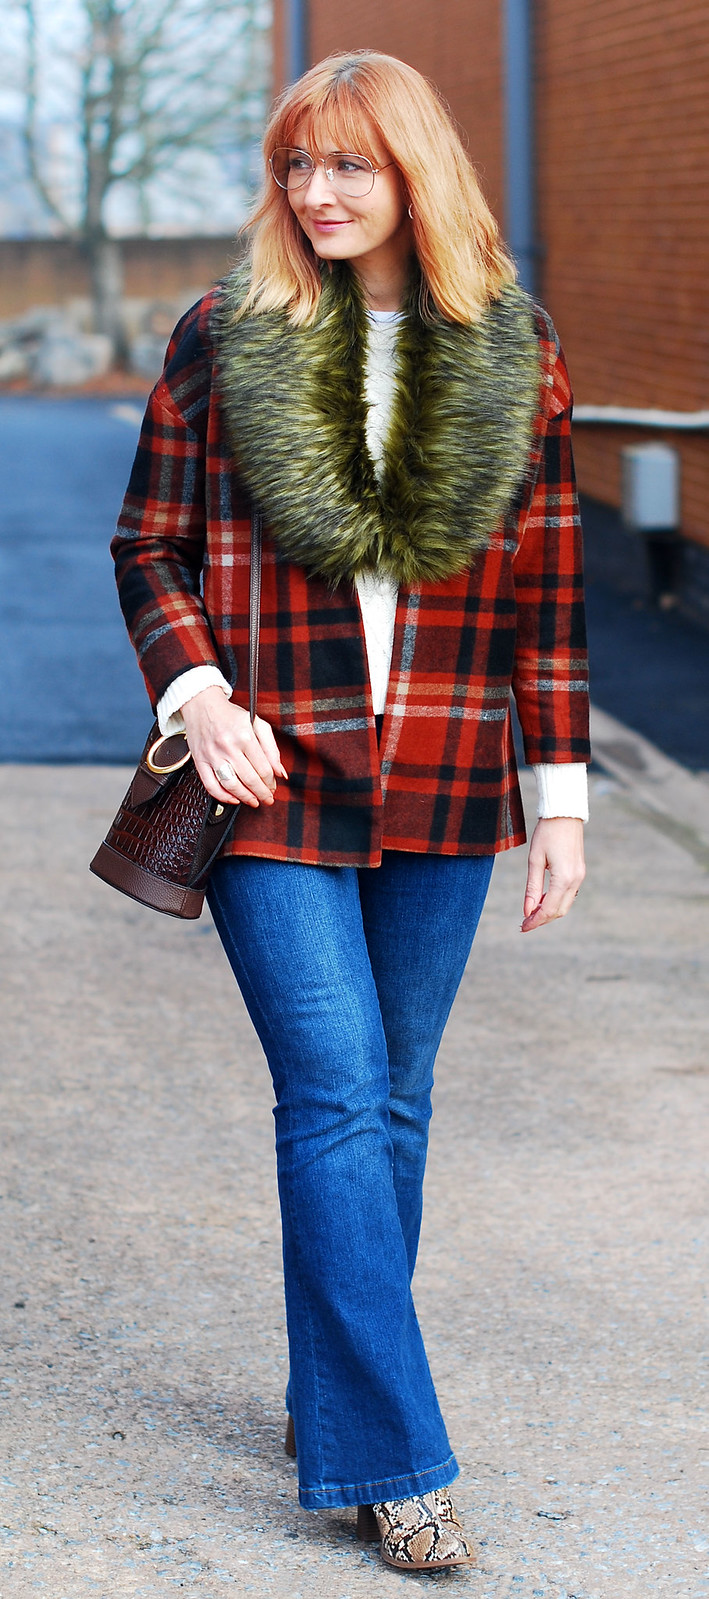 Autumnal casual outfit of faux fur collar \ red tartan jacket \ denim flares \ snakeskin boots | Not Dressed As Lamb, over 40 style